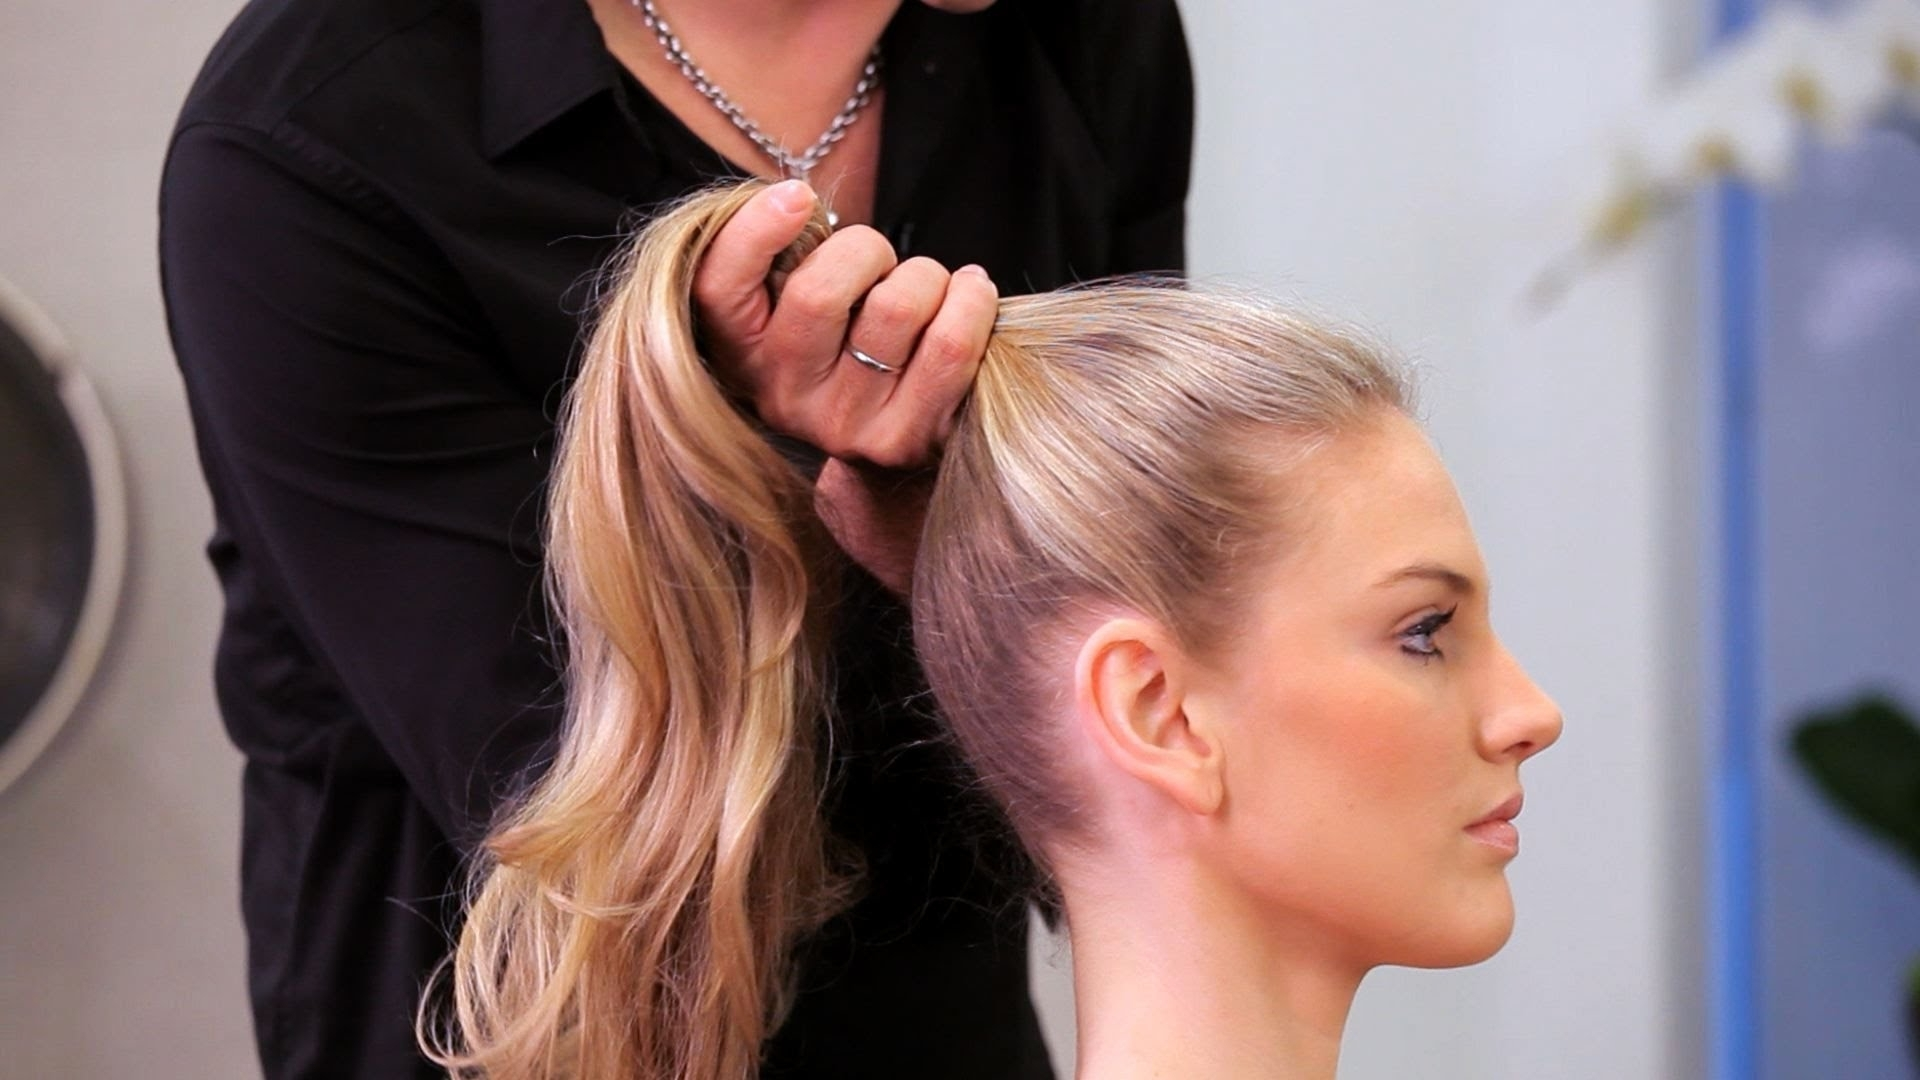 Fashionable Poofy Ponytail Hairstyles With Bump For How To Do A High Ponytail (View 10 of 20)